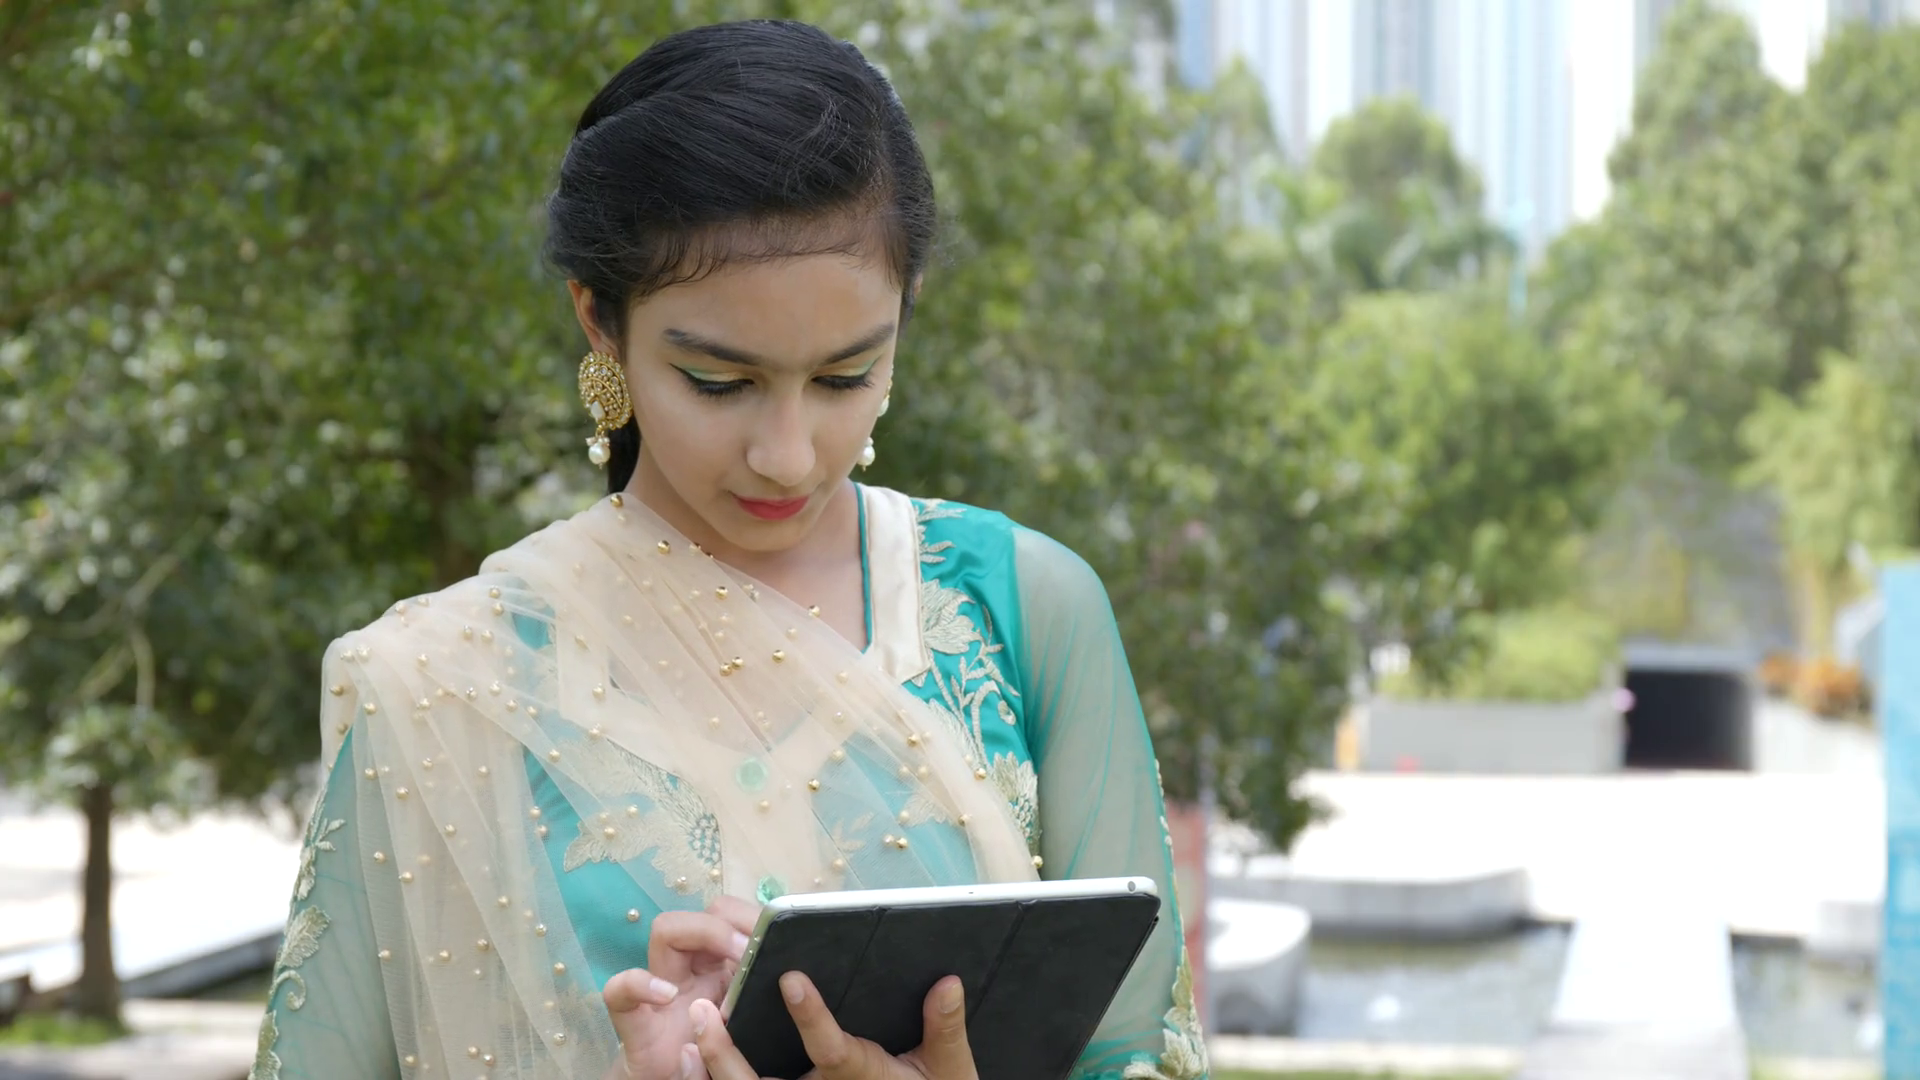 Young Pakistani Girl Using Tablet In The Park Stock